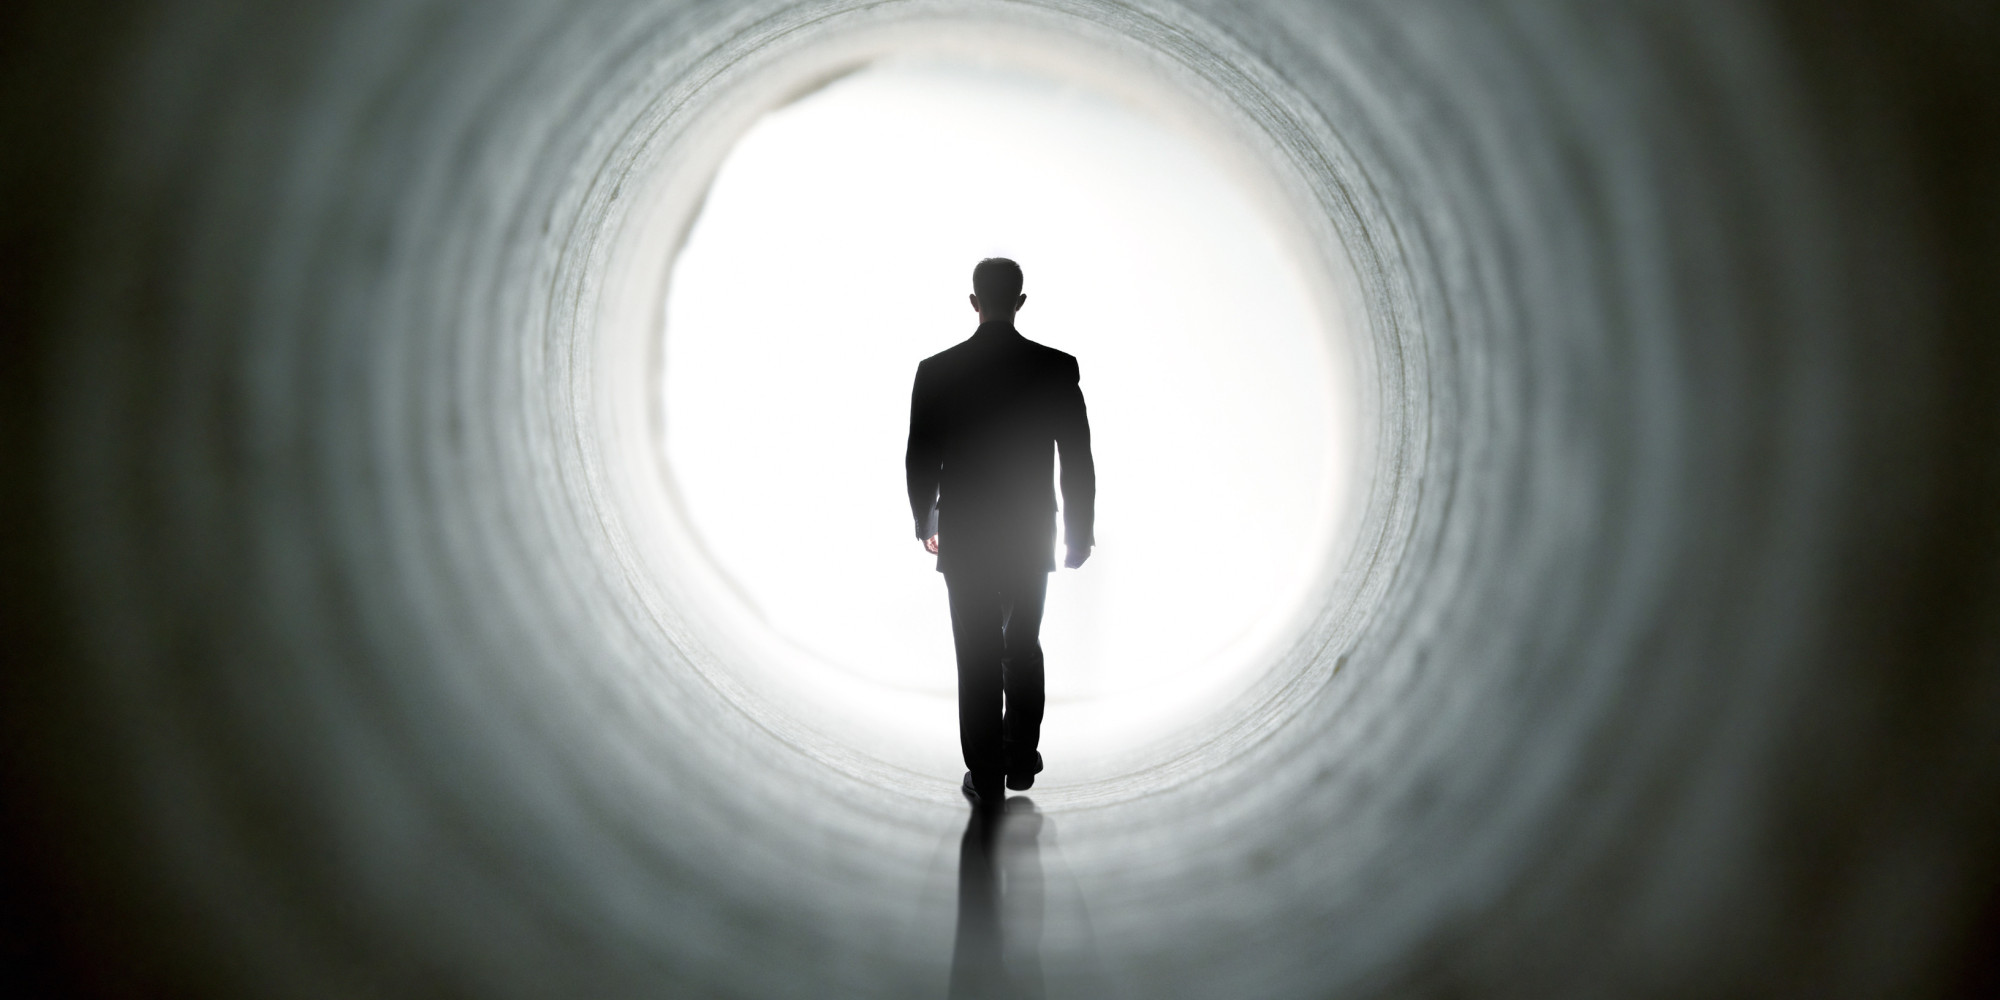 o-death-tunnel-facebook A Journey Of Life. POETRY